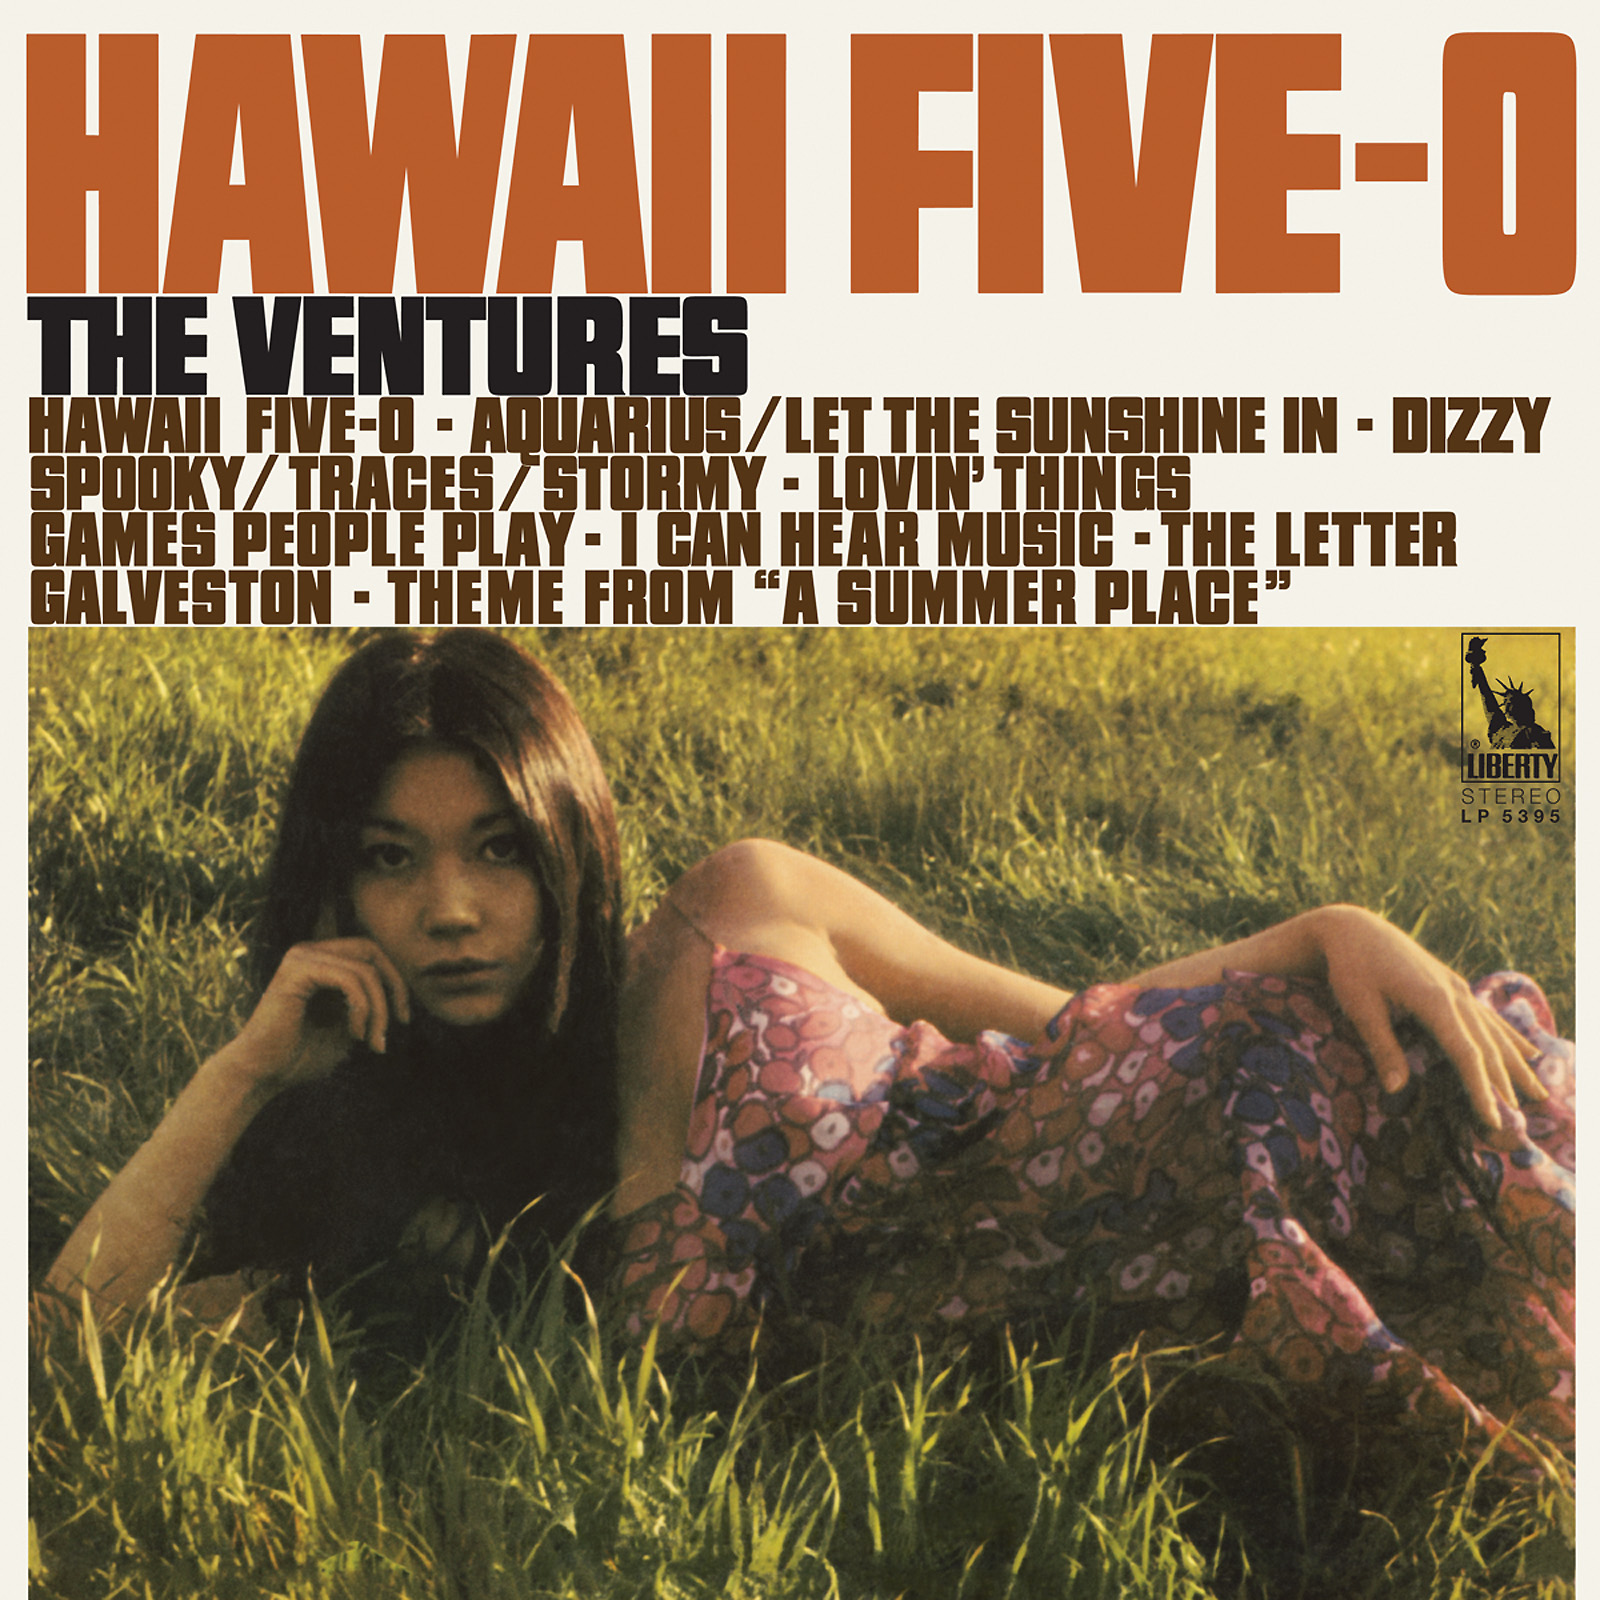 Ventures, The - Hawaii Five-O LIMITED EDITION Colored Vinyl LP